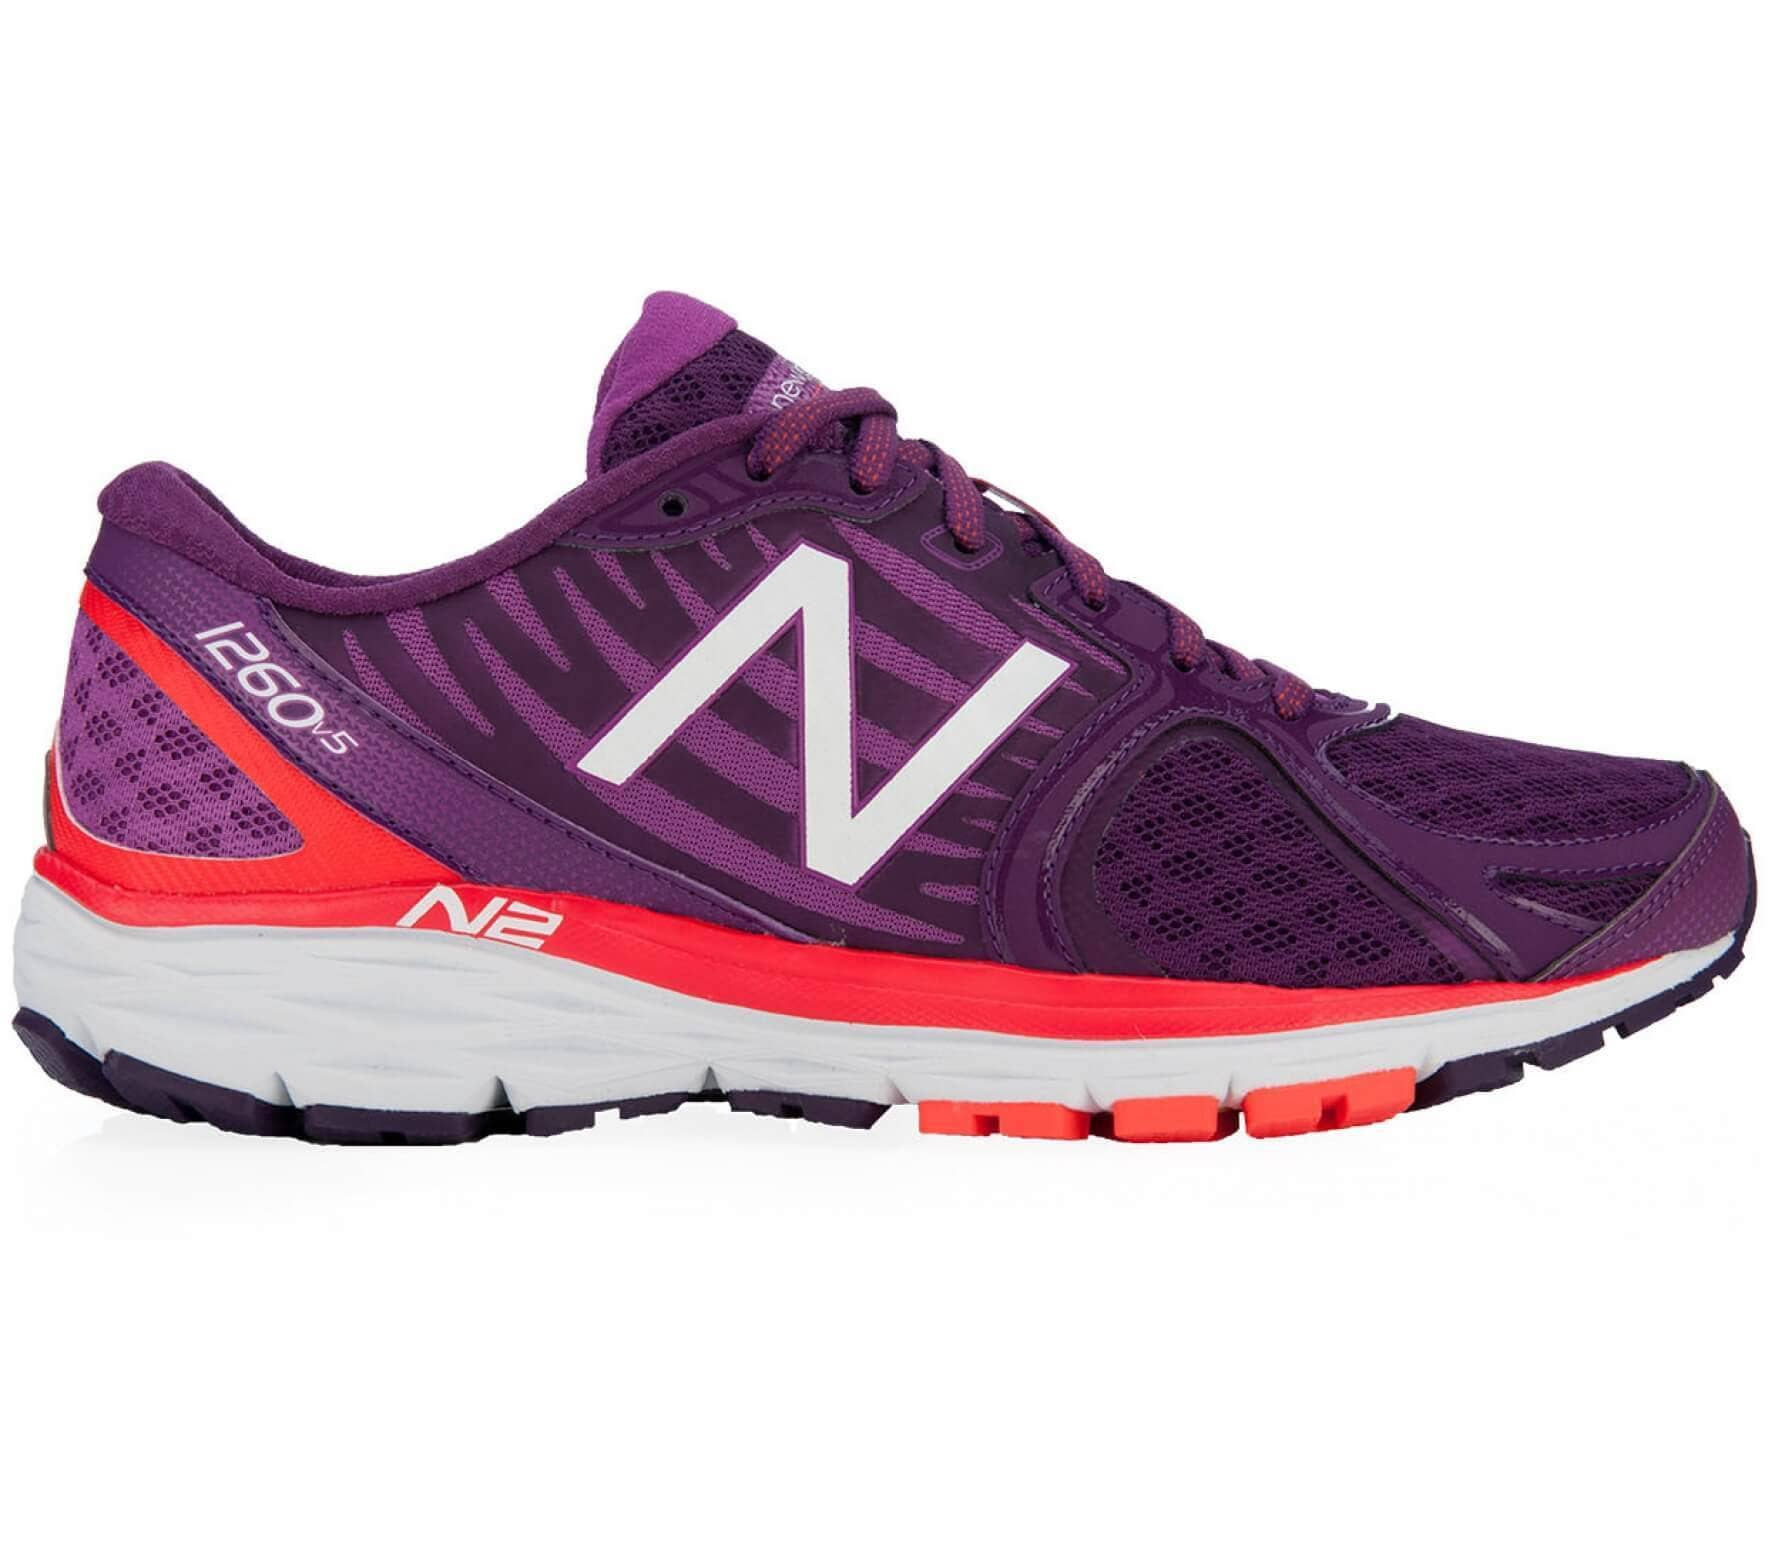 New Balance 1260 Zapatillas de correr